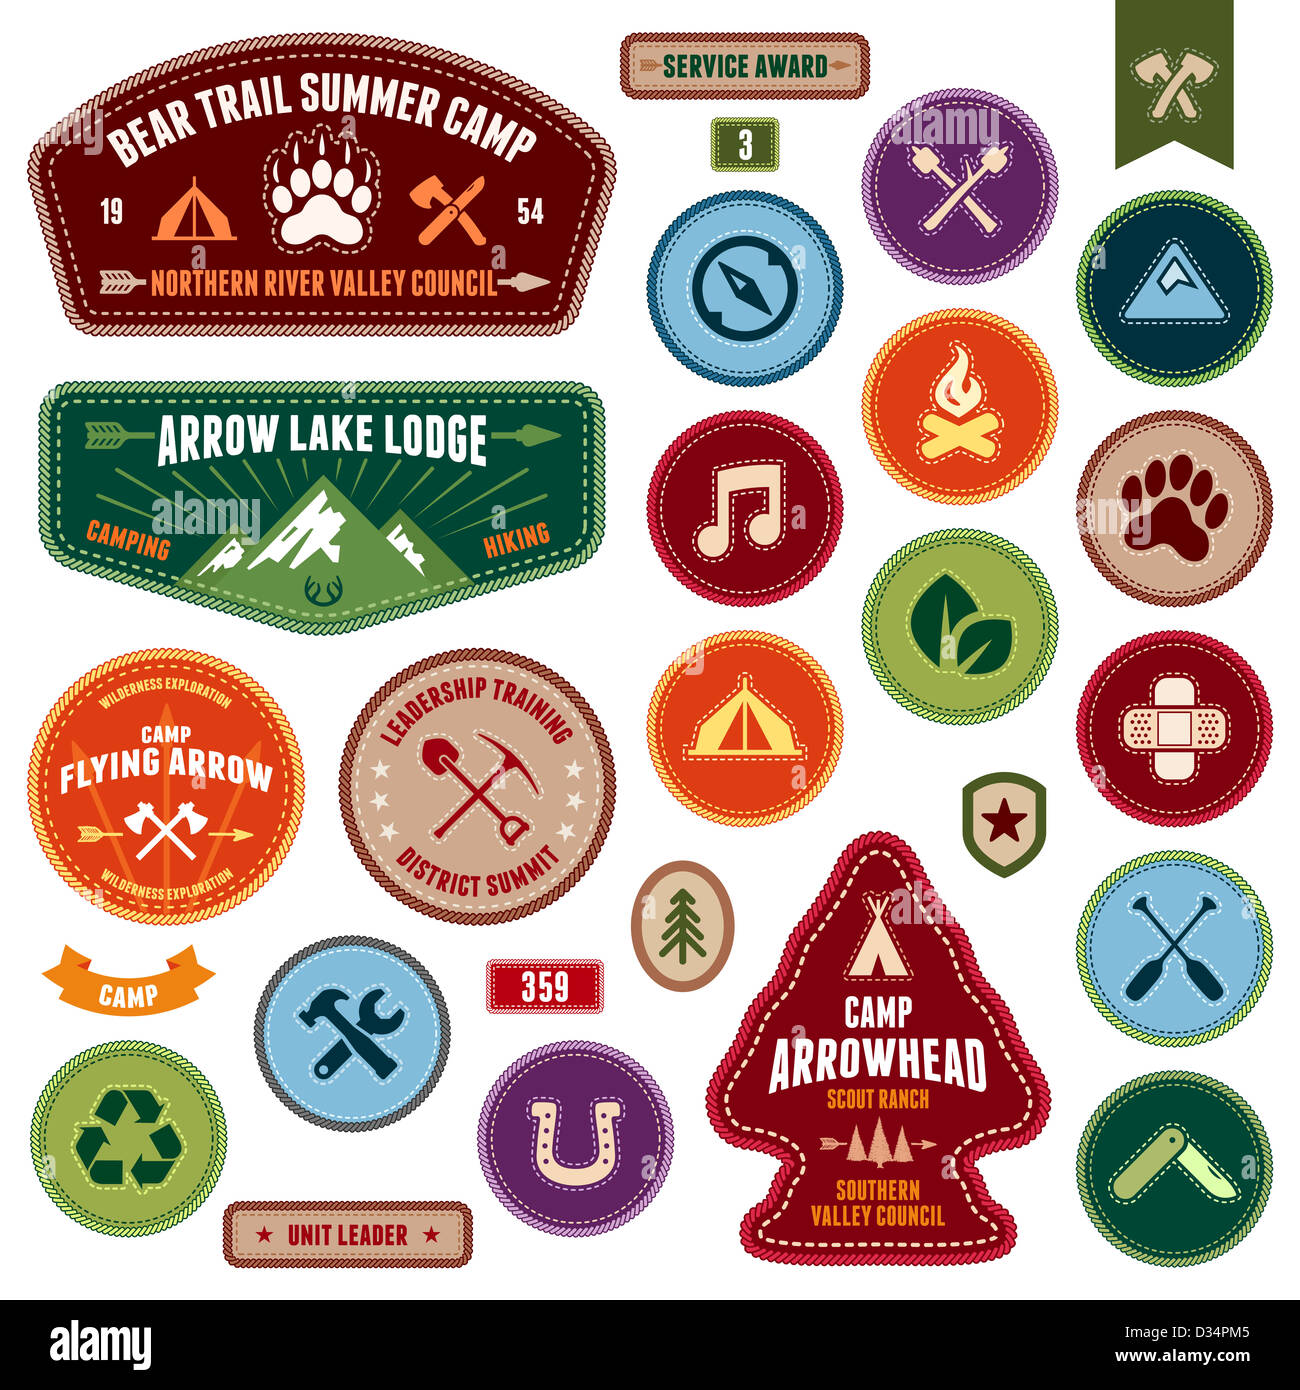 Set of scout badges and merit badges for outdoor activities - Stock Image